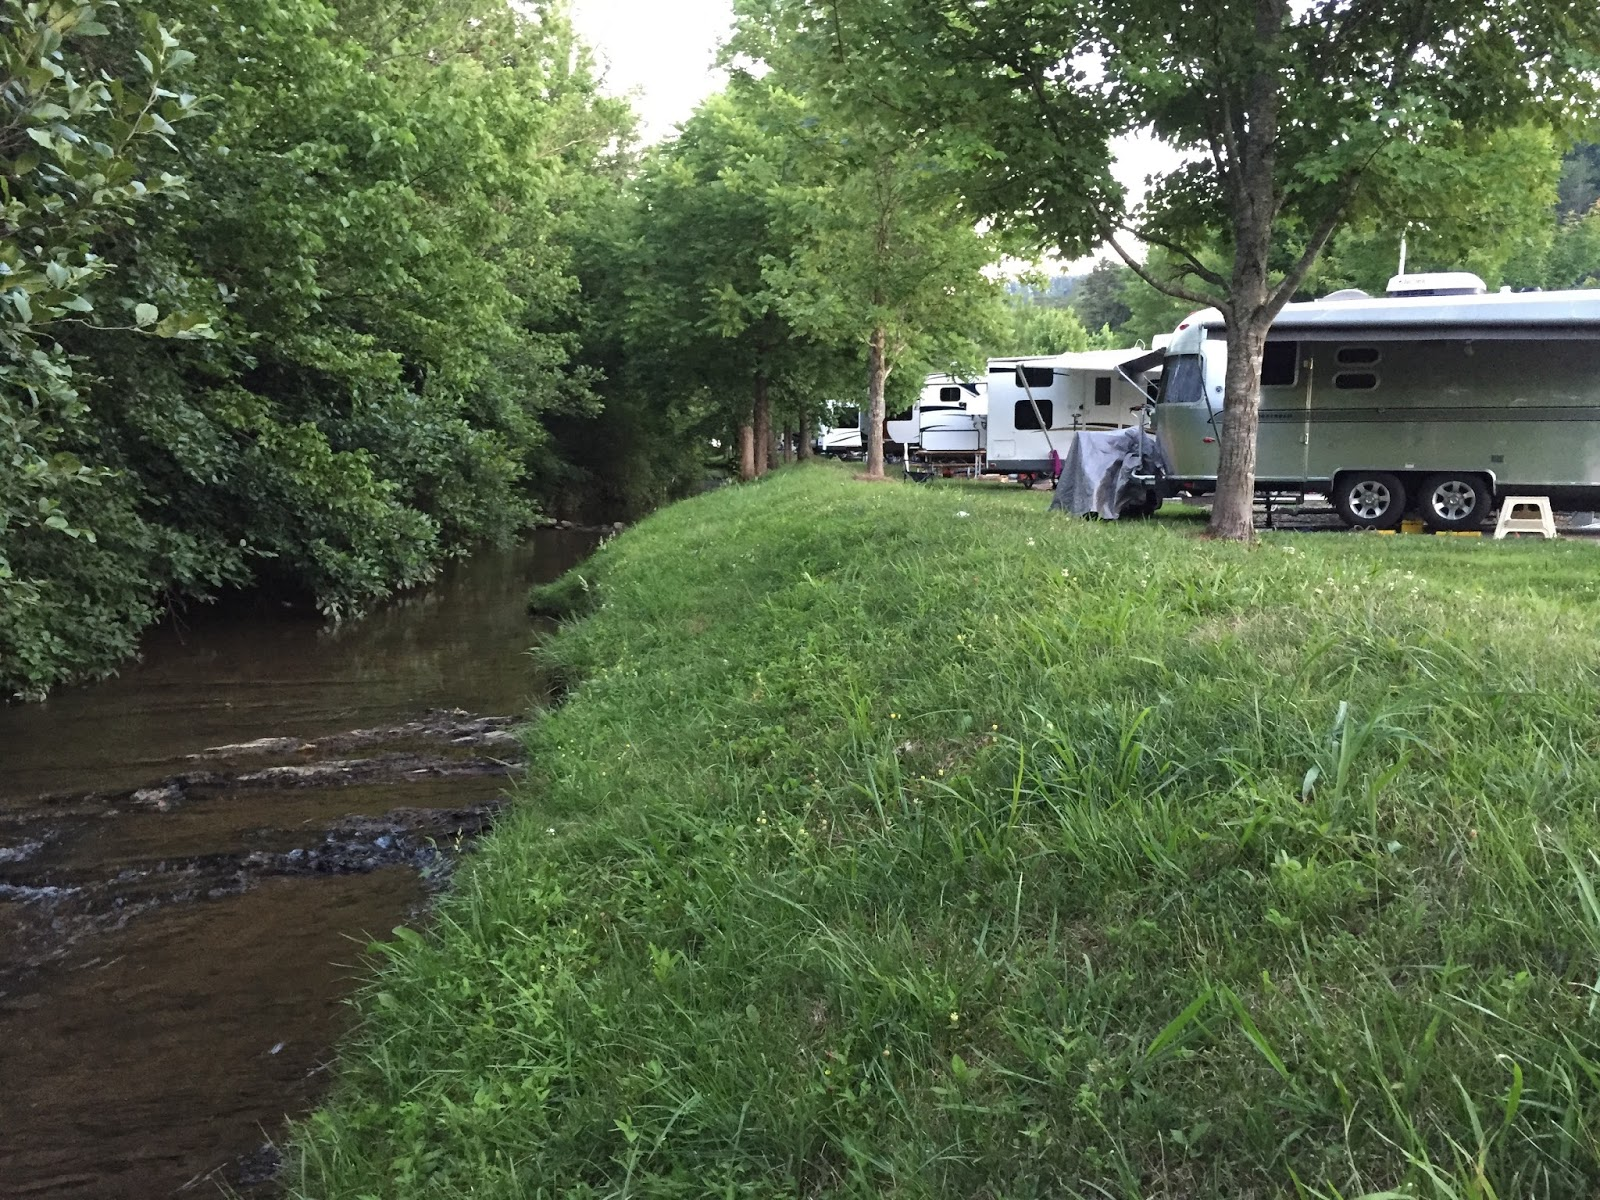 cozy rosie: pine mountain rv park by the creek - pigeon forge, tennessee